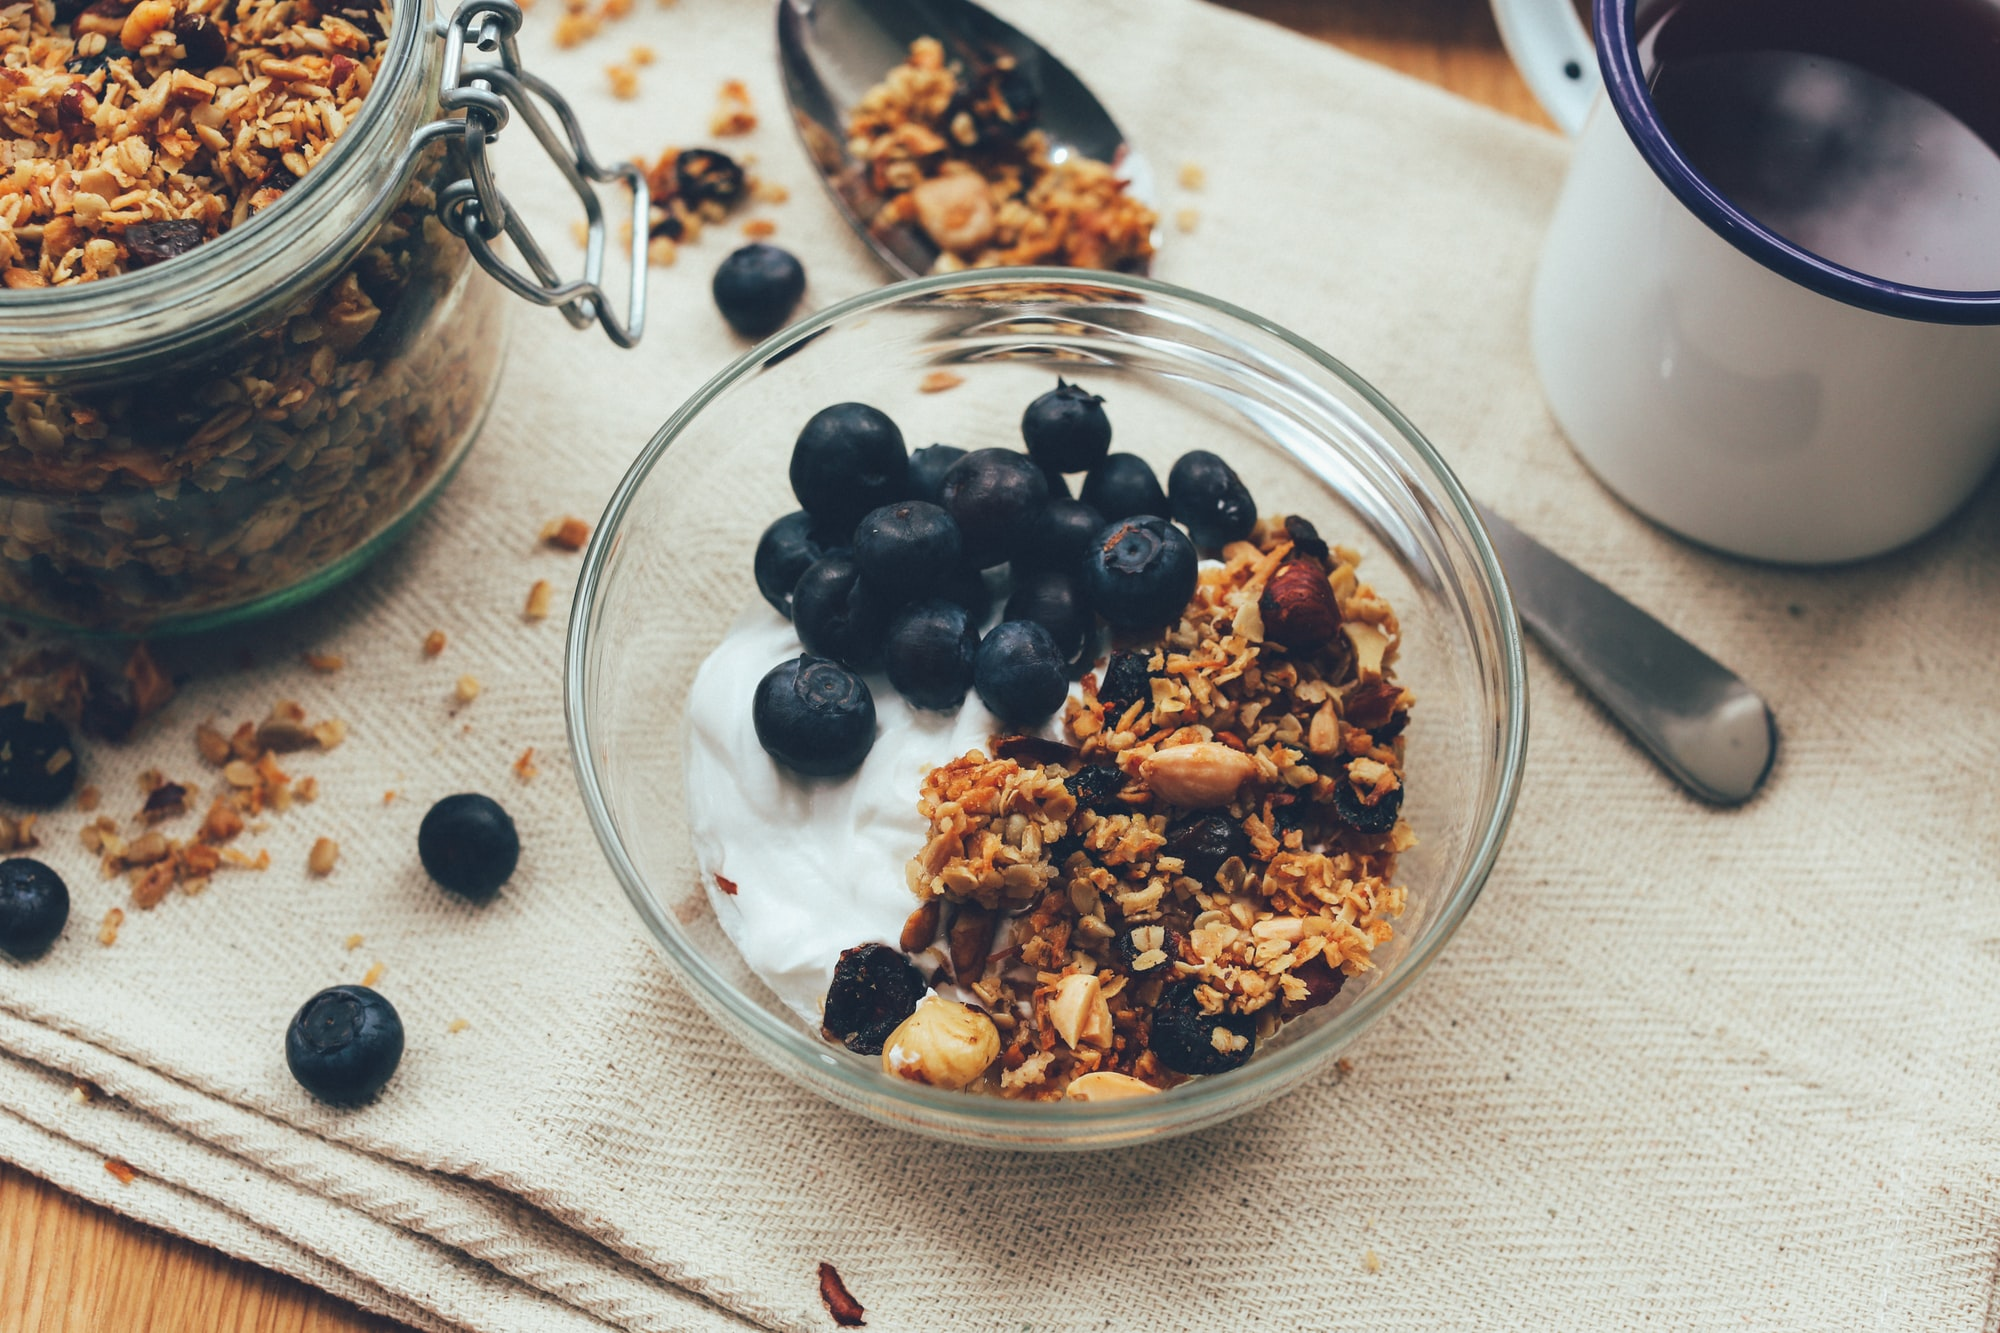 Breakfast Granola. Food styling by Rhubarb & Beans.